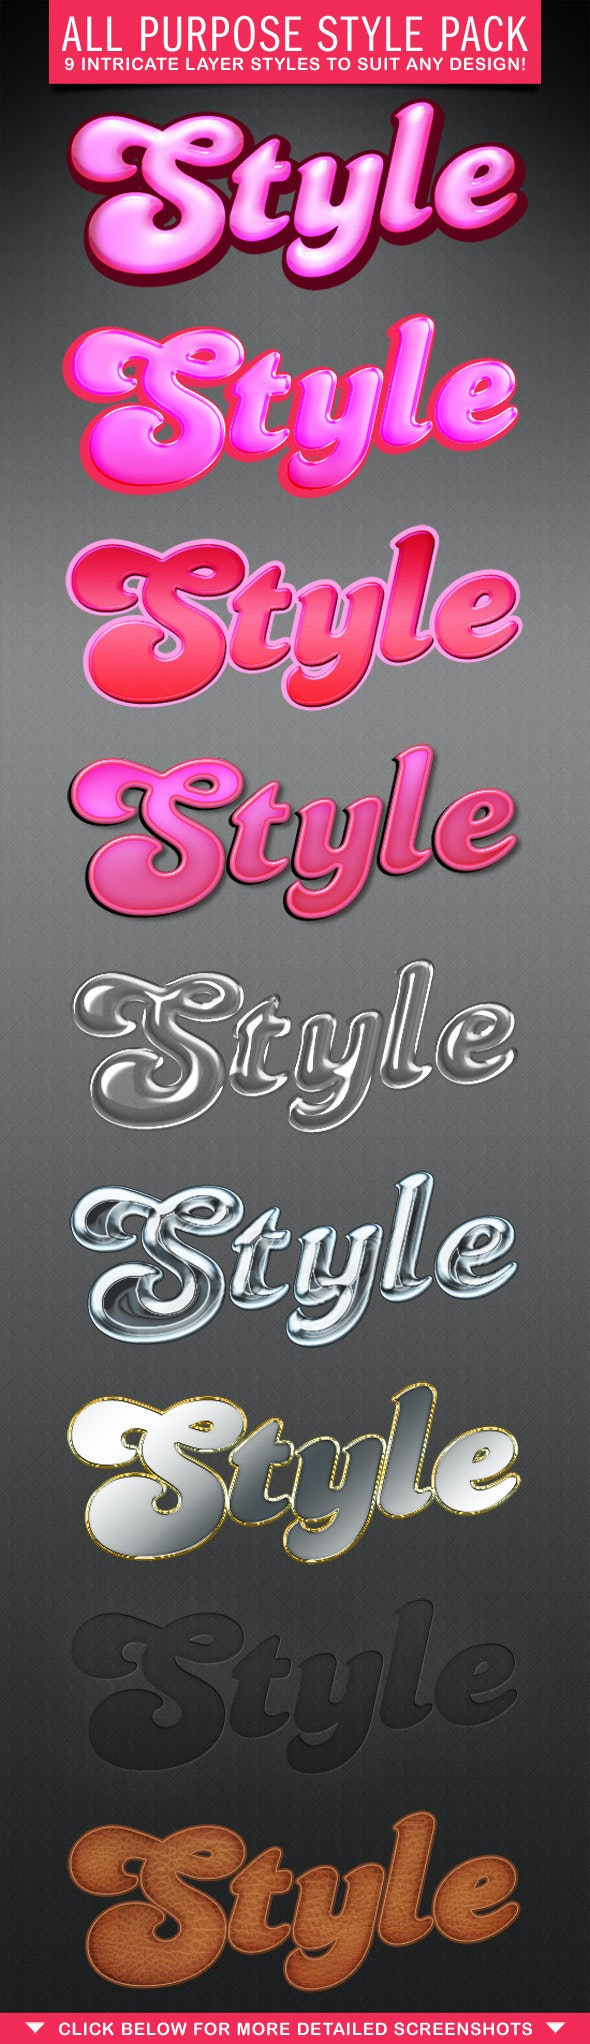 All Purpose Style Pack - Text Effects Styles